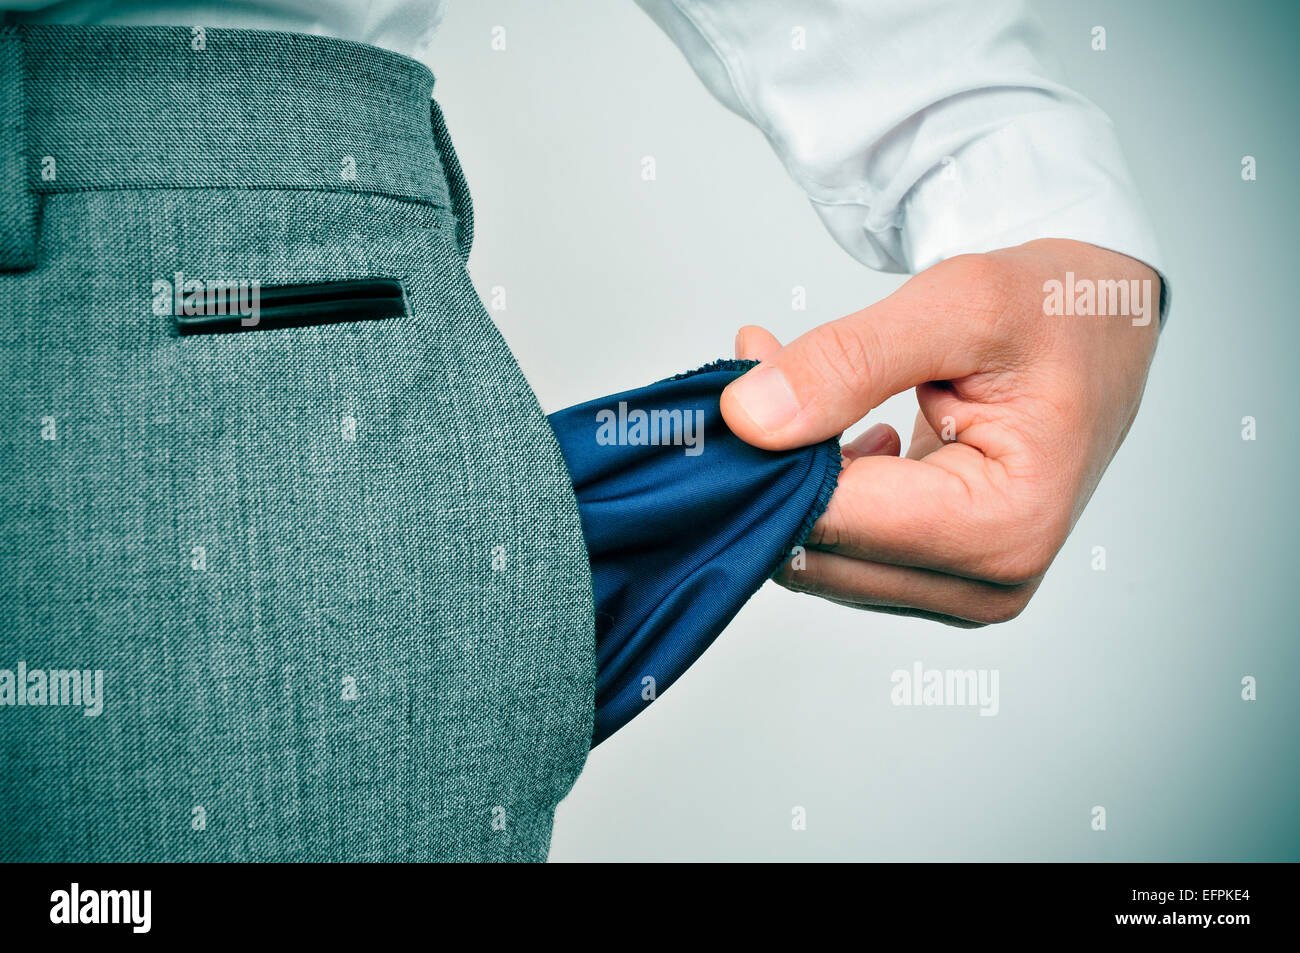 a broke businessman showing his empty pocket - Stock Image